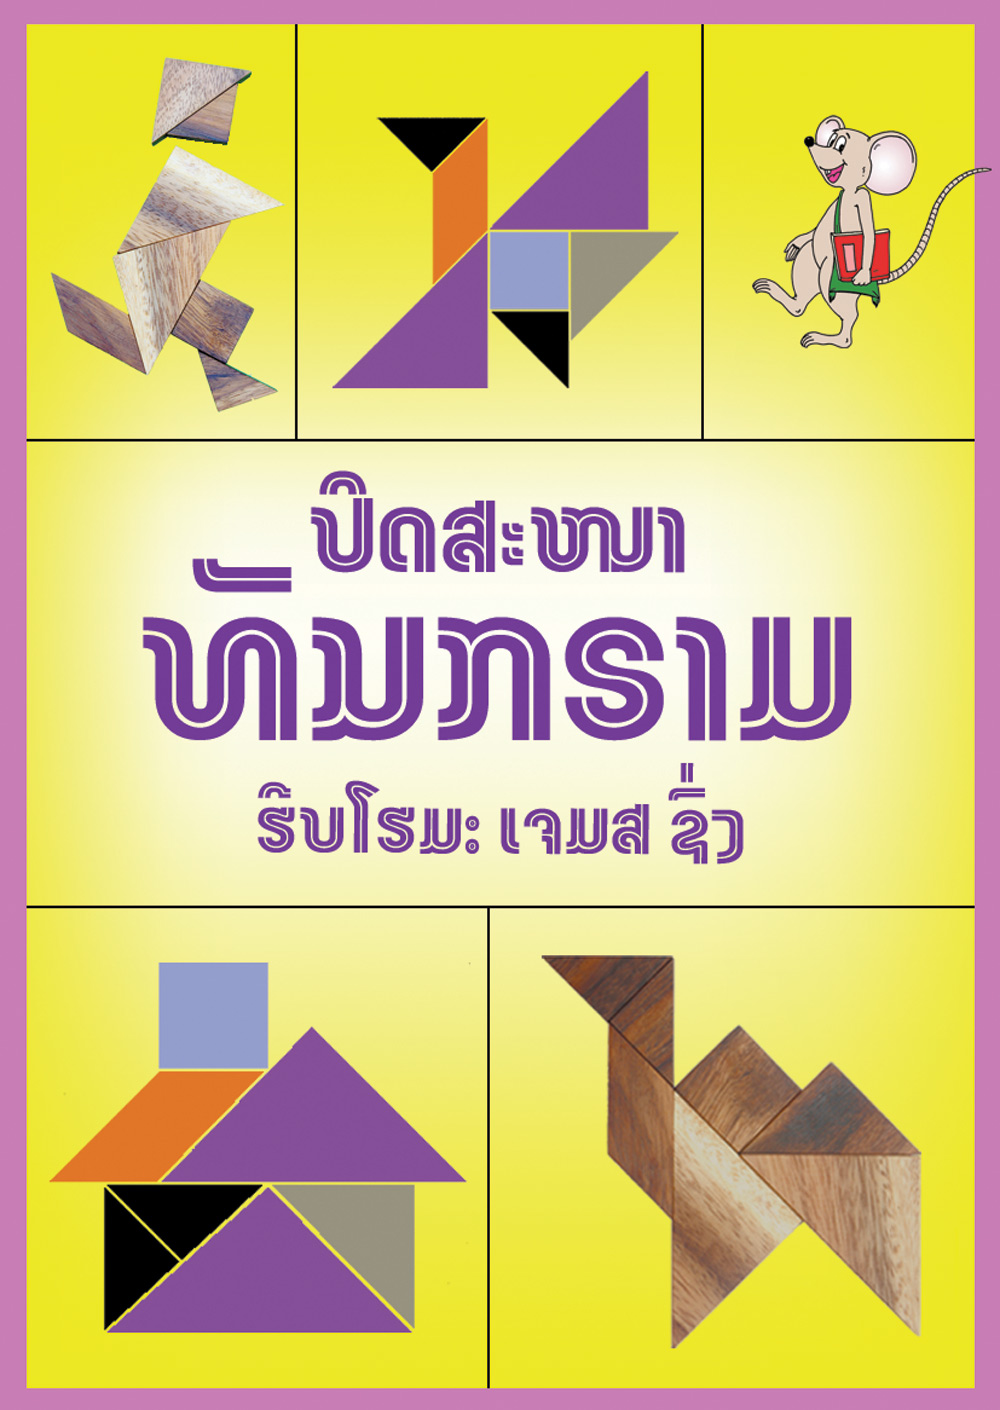 Tangrams large book cover, published in Lao language